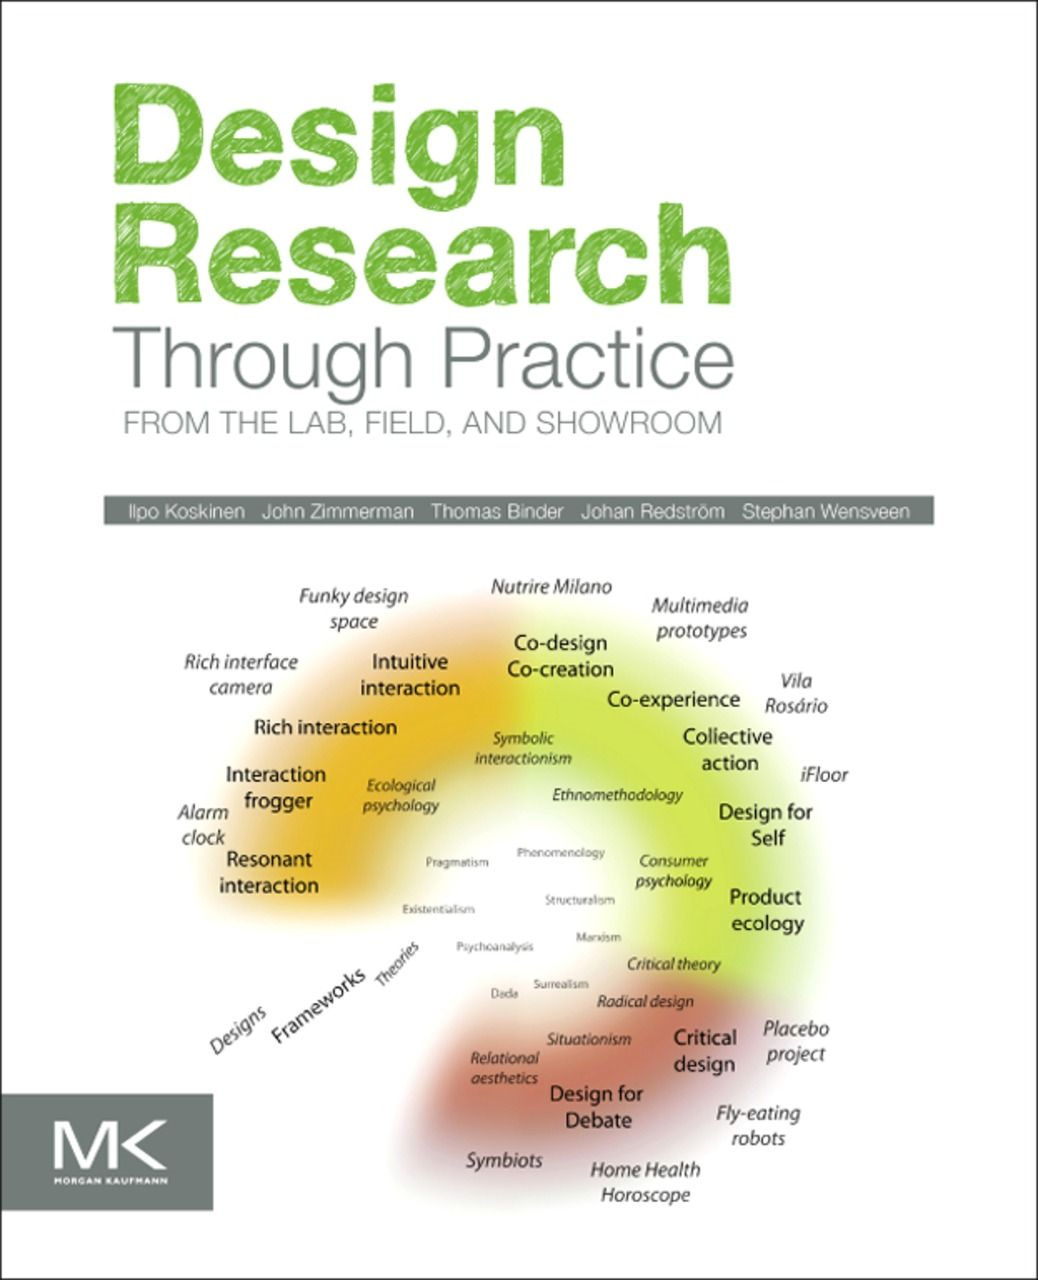 Design Research Through Practice From the Lab,  Field,  and Showroom